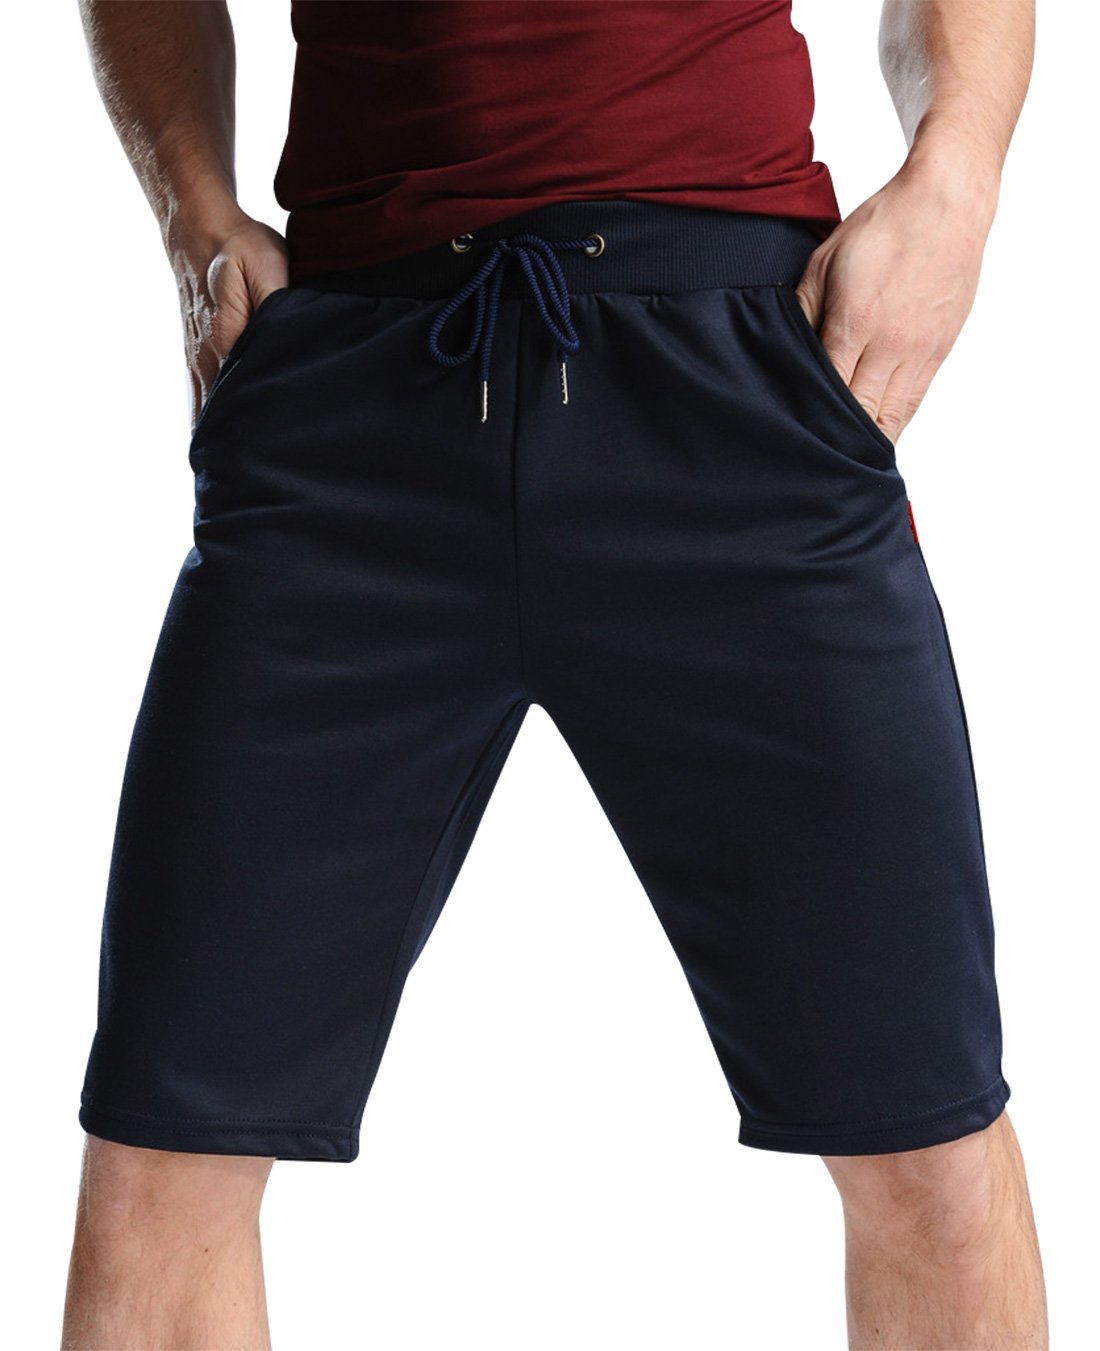 Men Cotton Elastic Waist Casual Shorts Fitted Gym Lounge Pants with Pockets Feibai